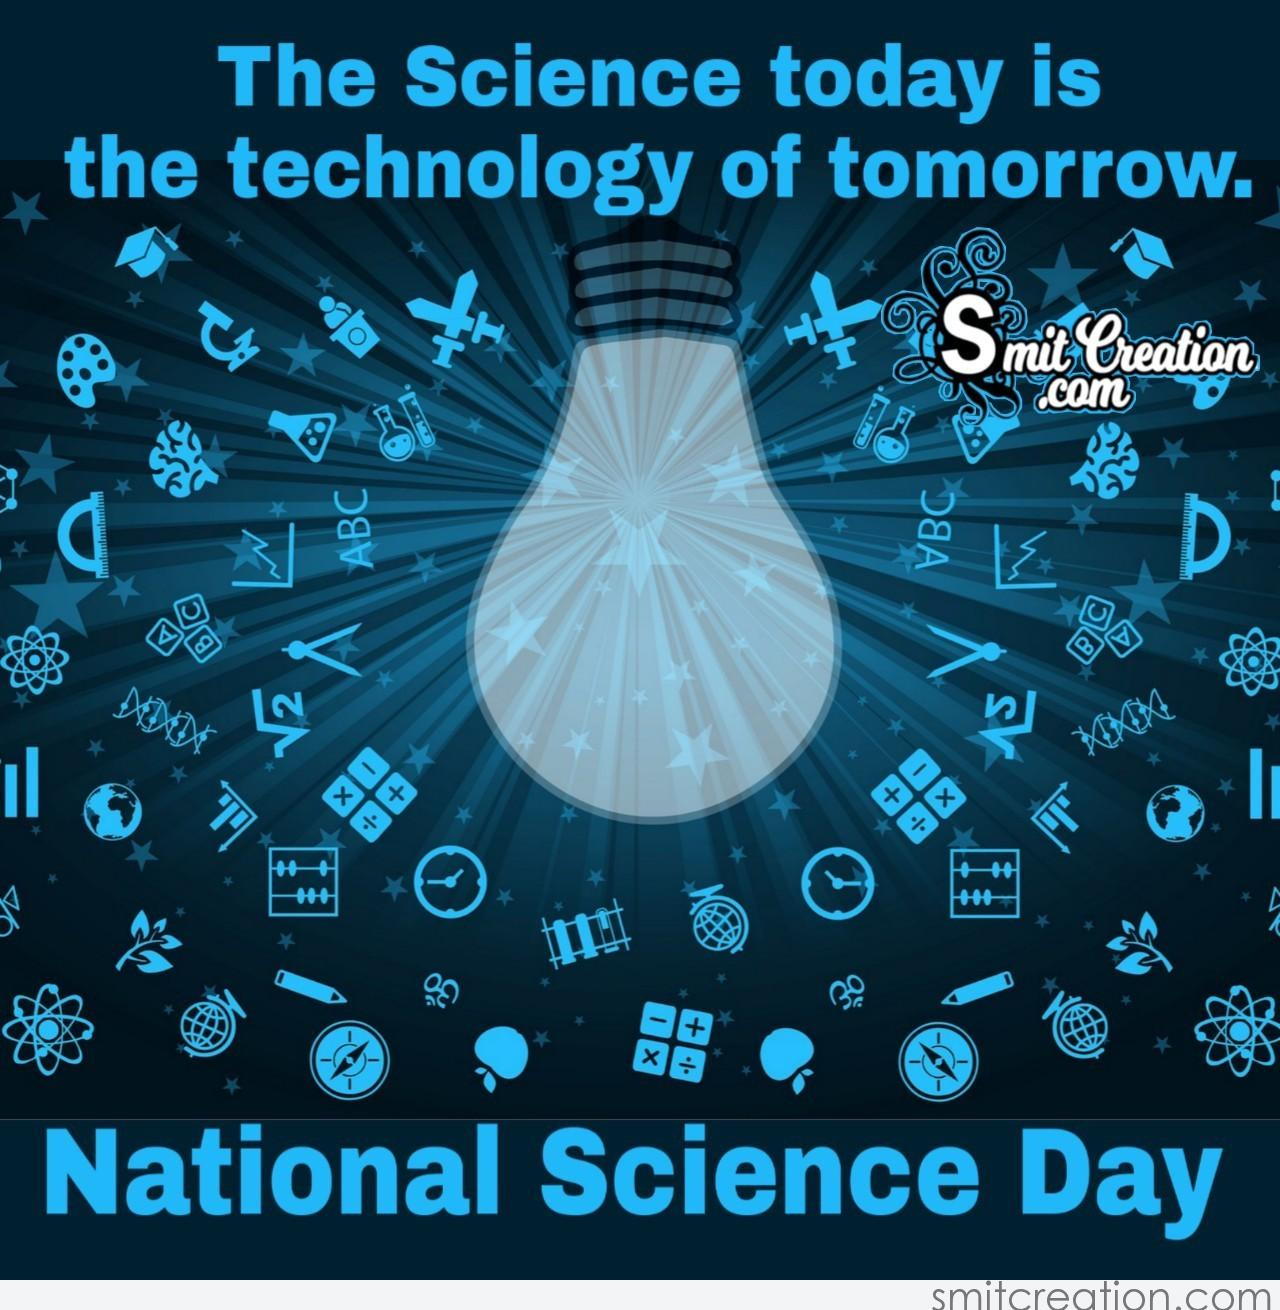 national science day quote on technology com